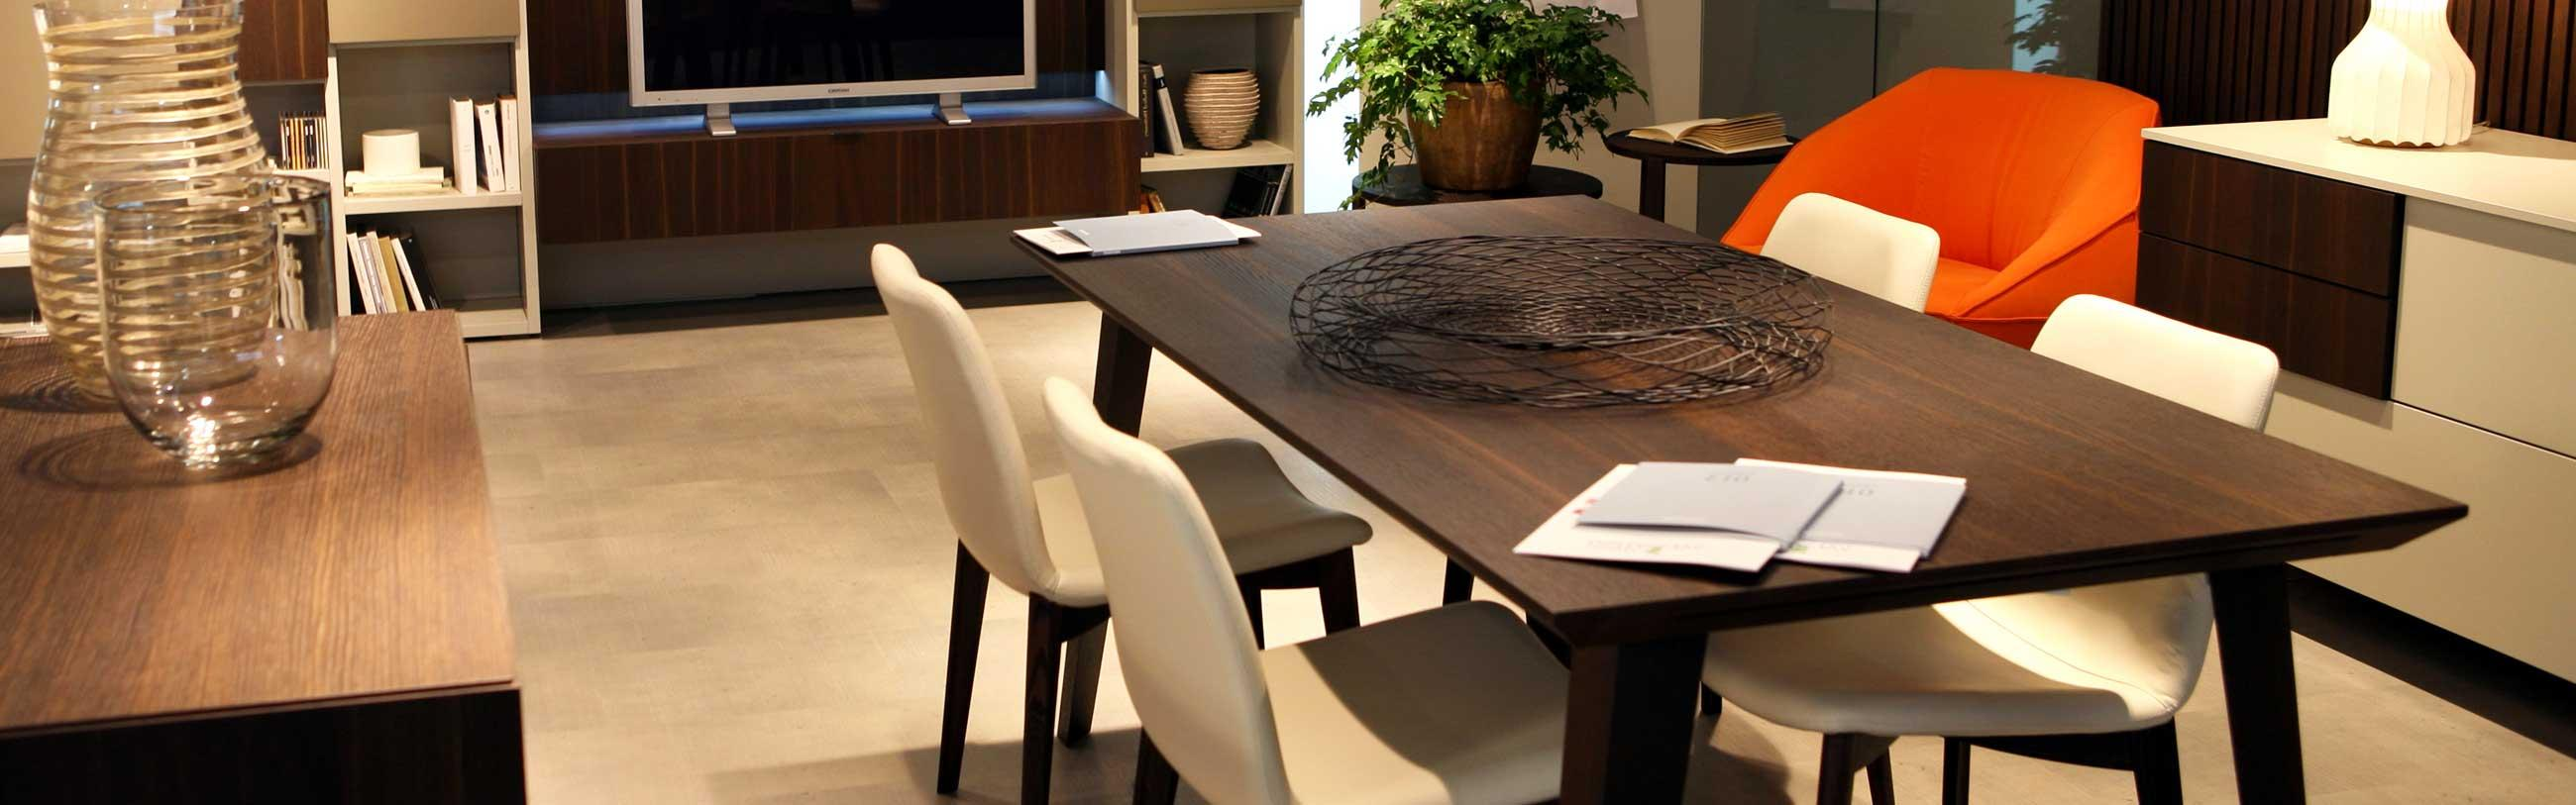 How To Make Your Living Dining Room Feel Like Separate Spaces Advice Inspiration Furniture And Choice